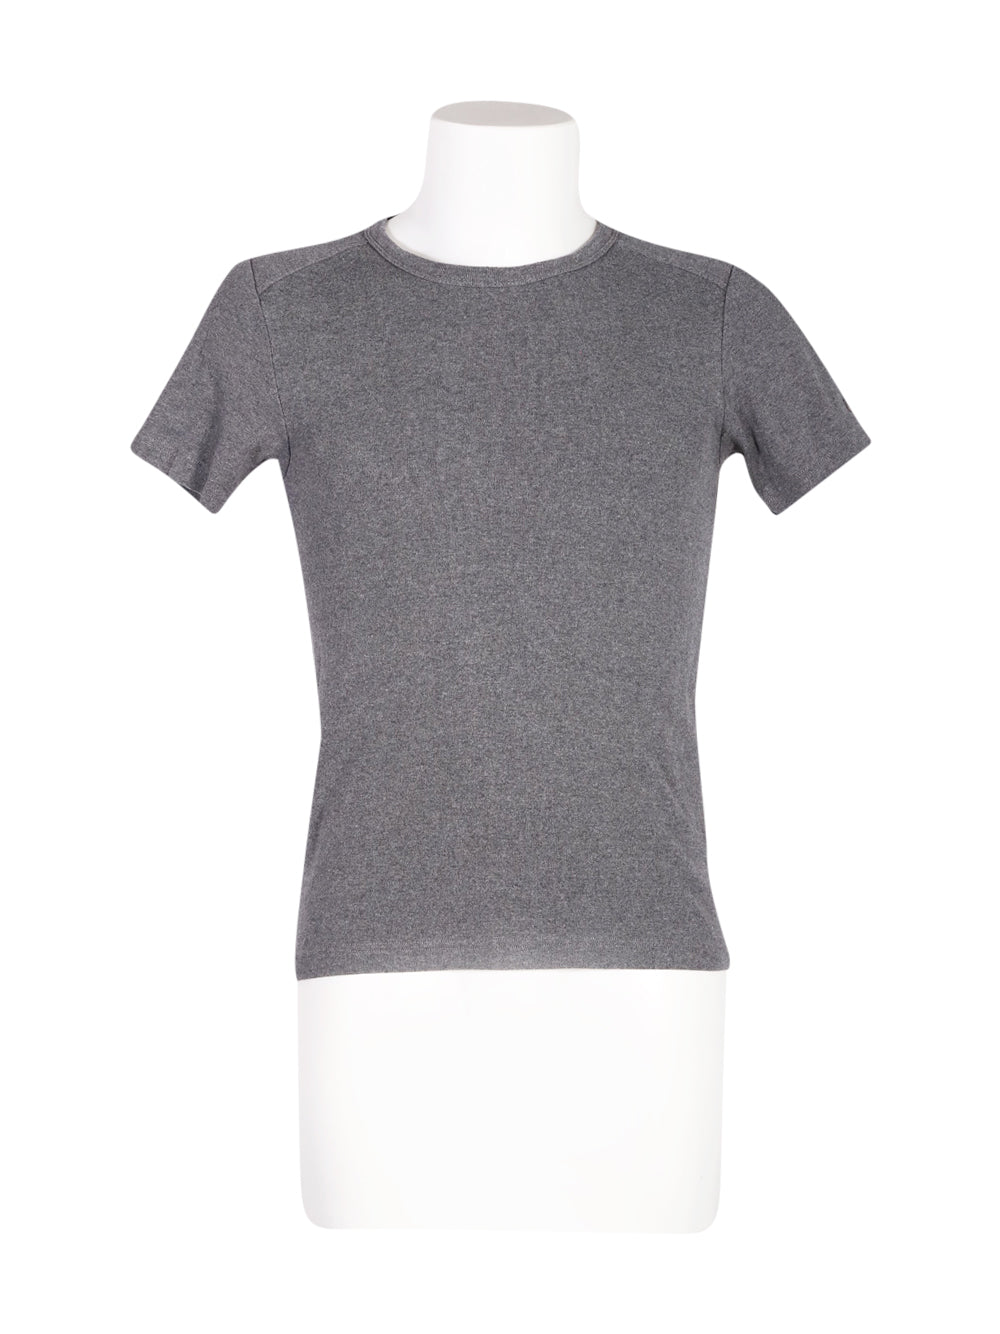 Front photo of Preloved Esprit Grey Man's t-shirt - size 40/L